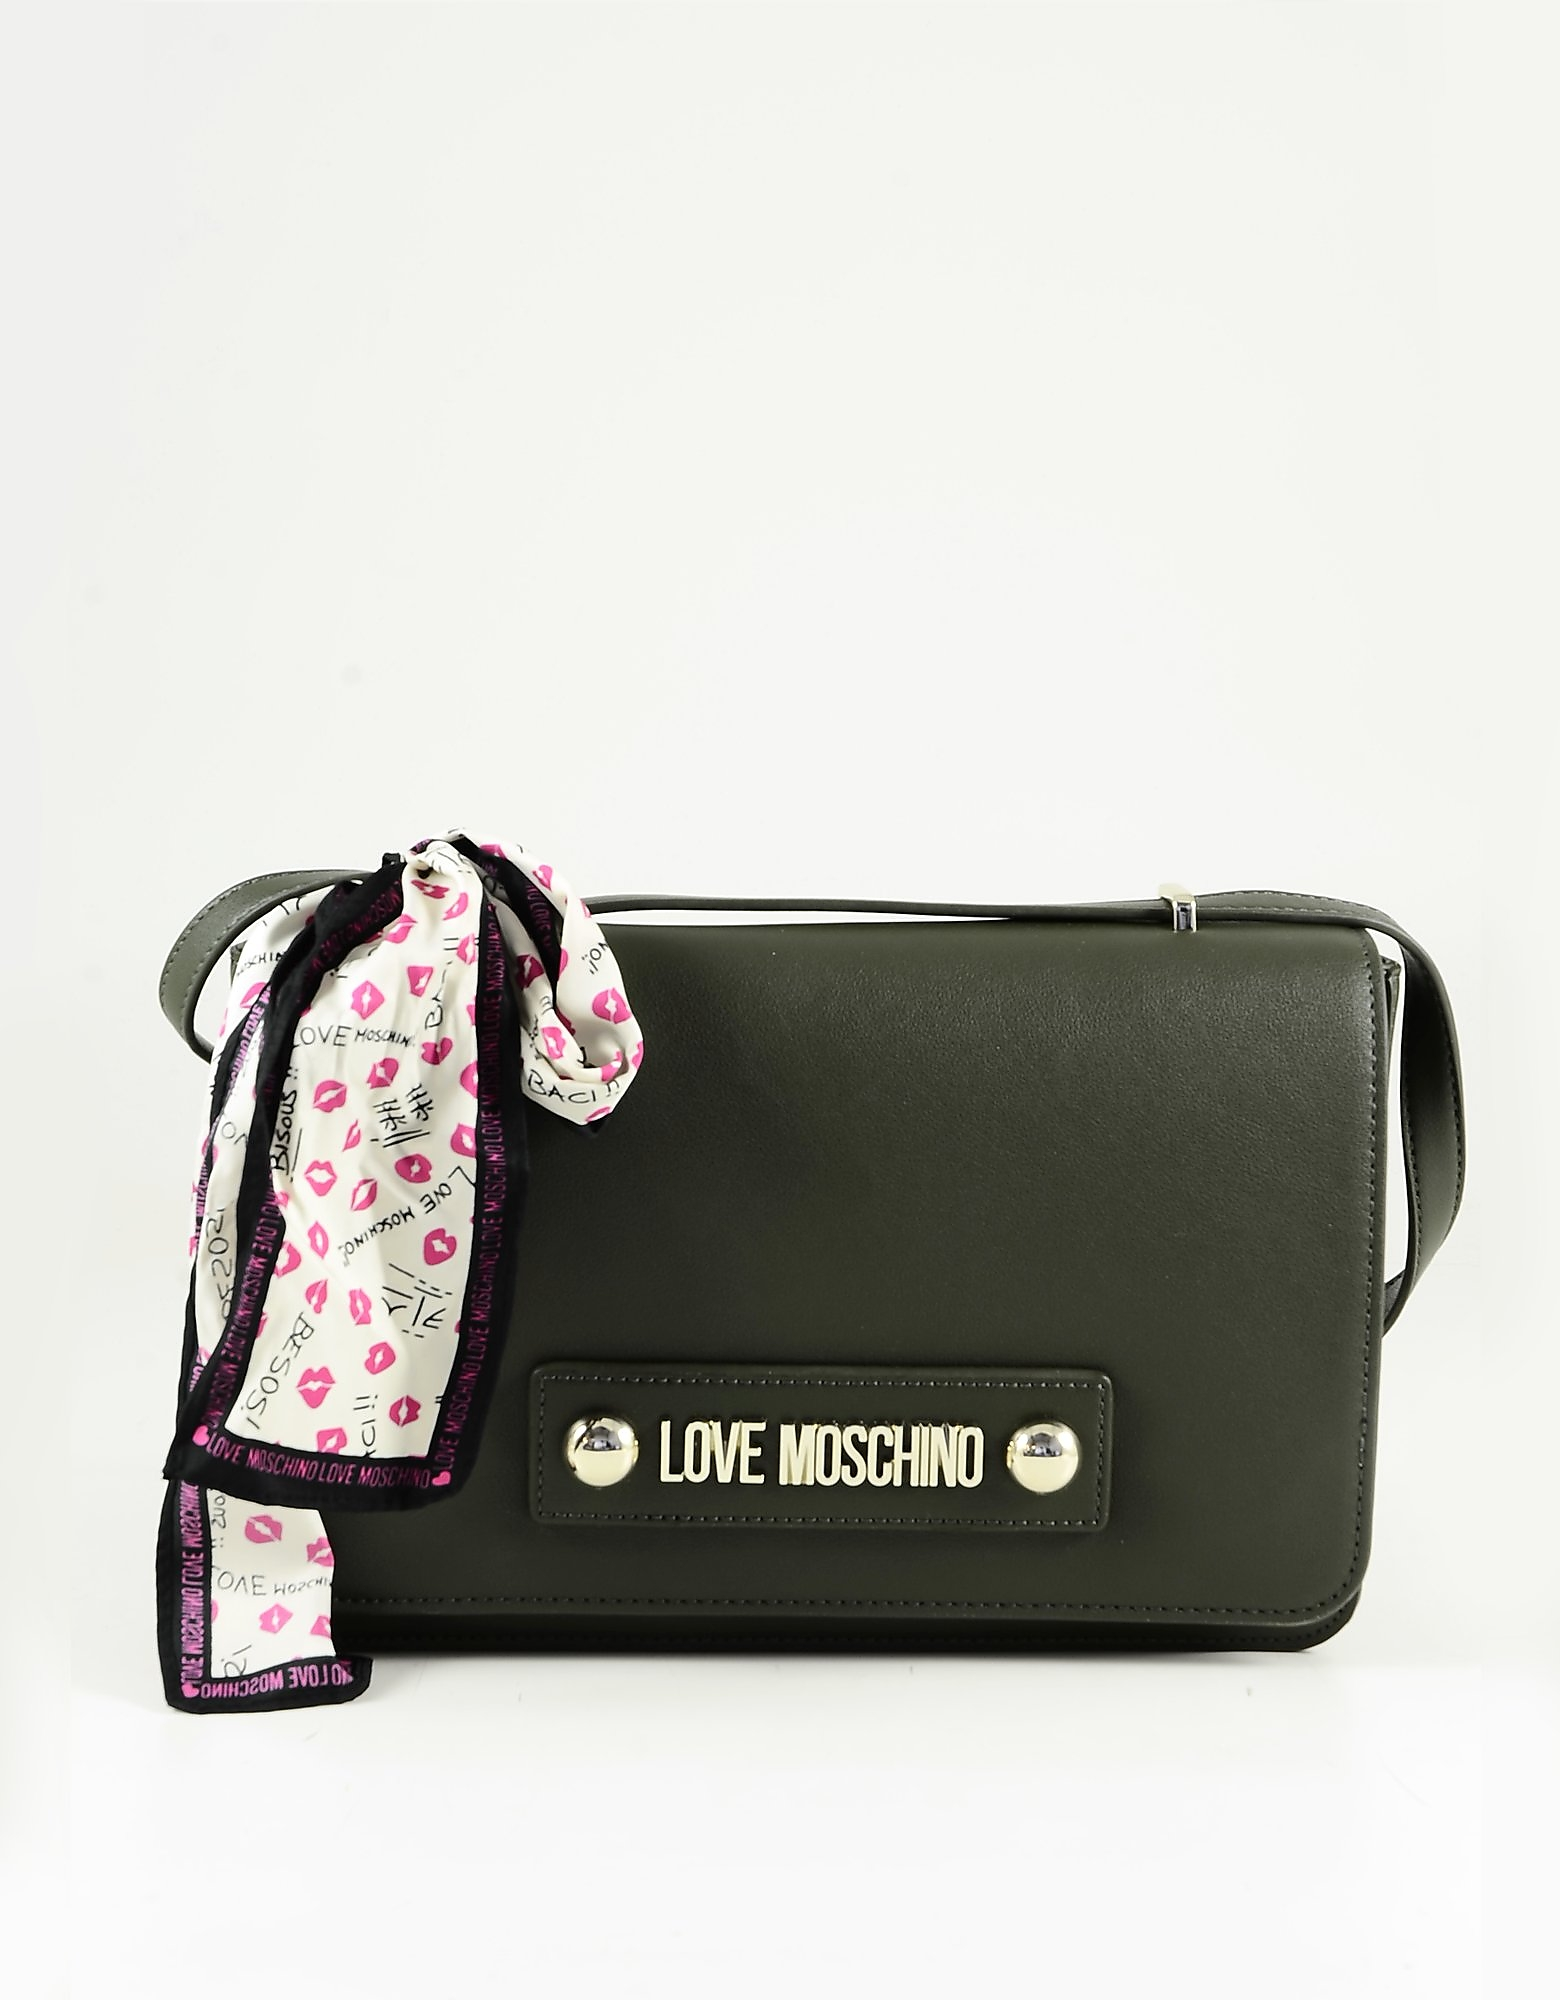 Love Moschino Green Eco-leather Scarf Shoulder Bag